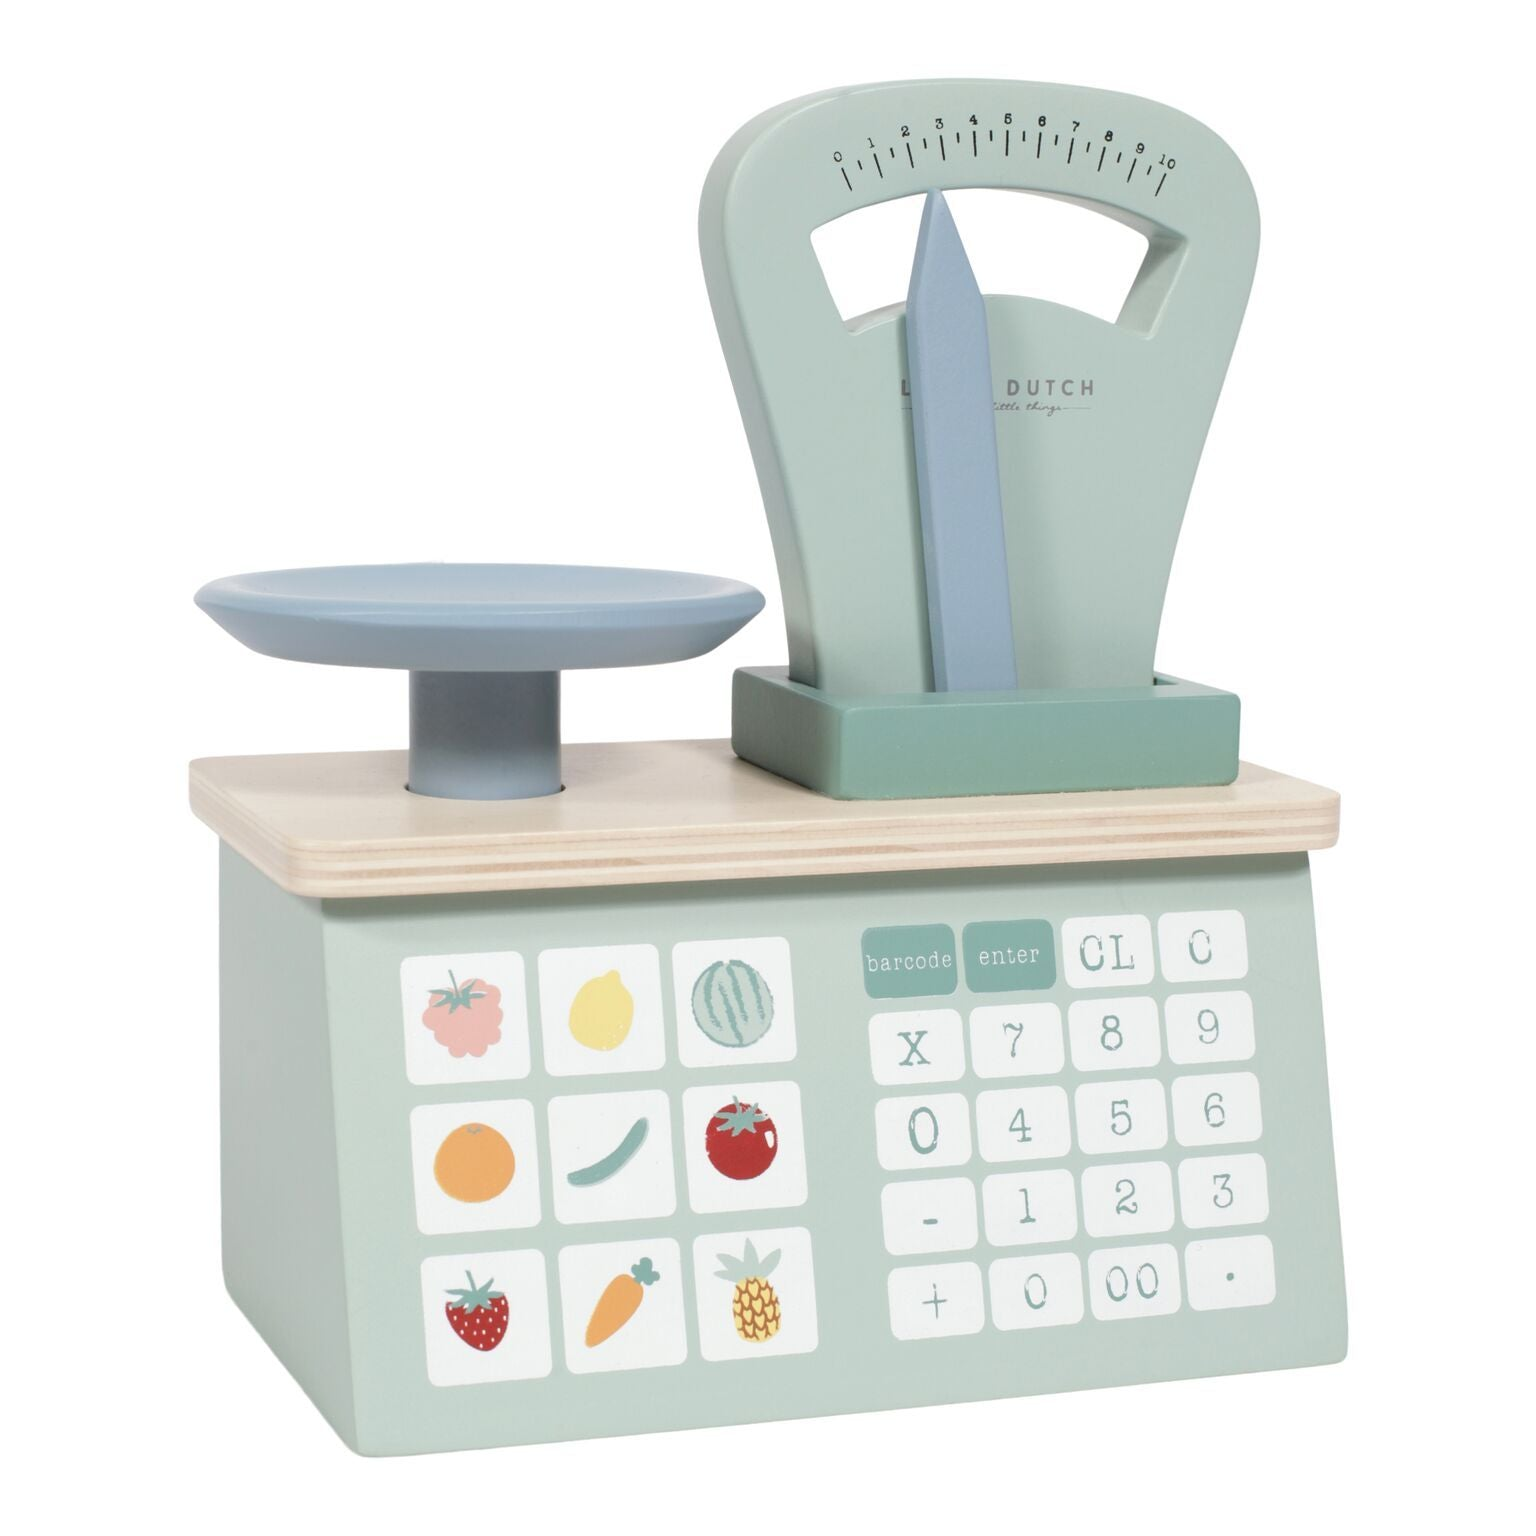 Little Dutch weighing scales